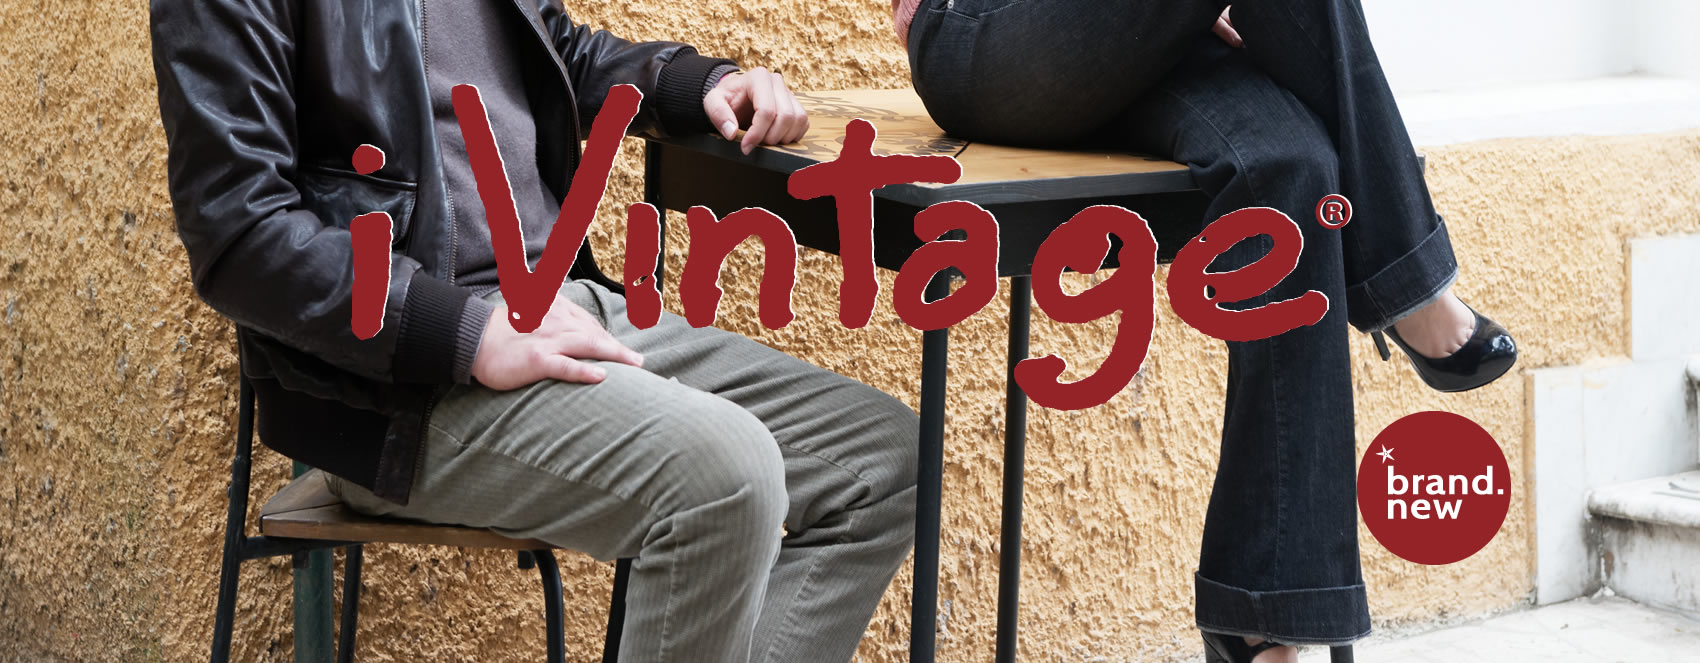 Ivintage Chinos